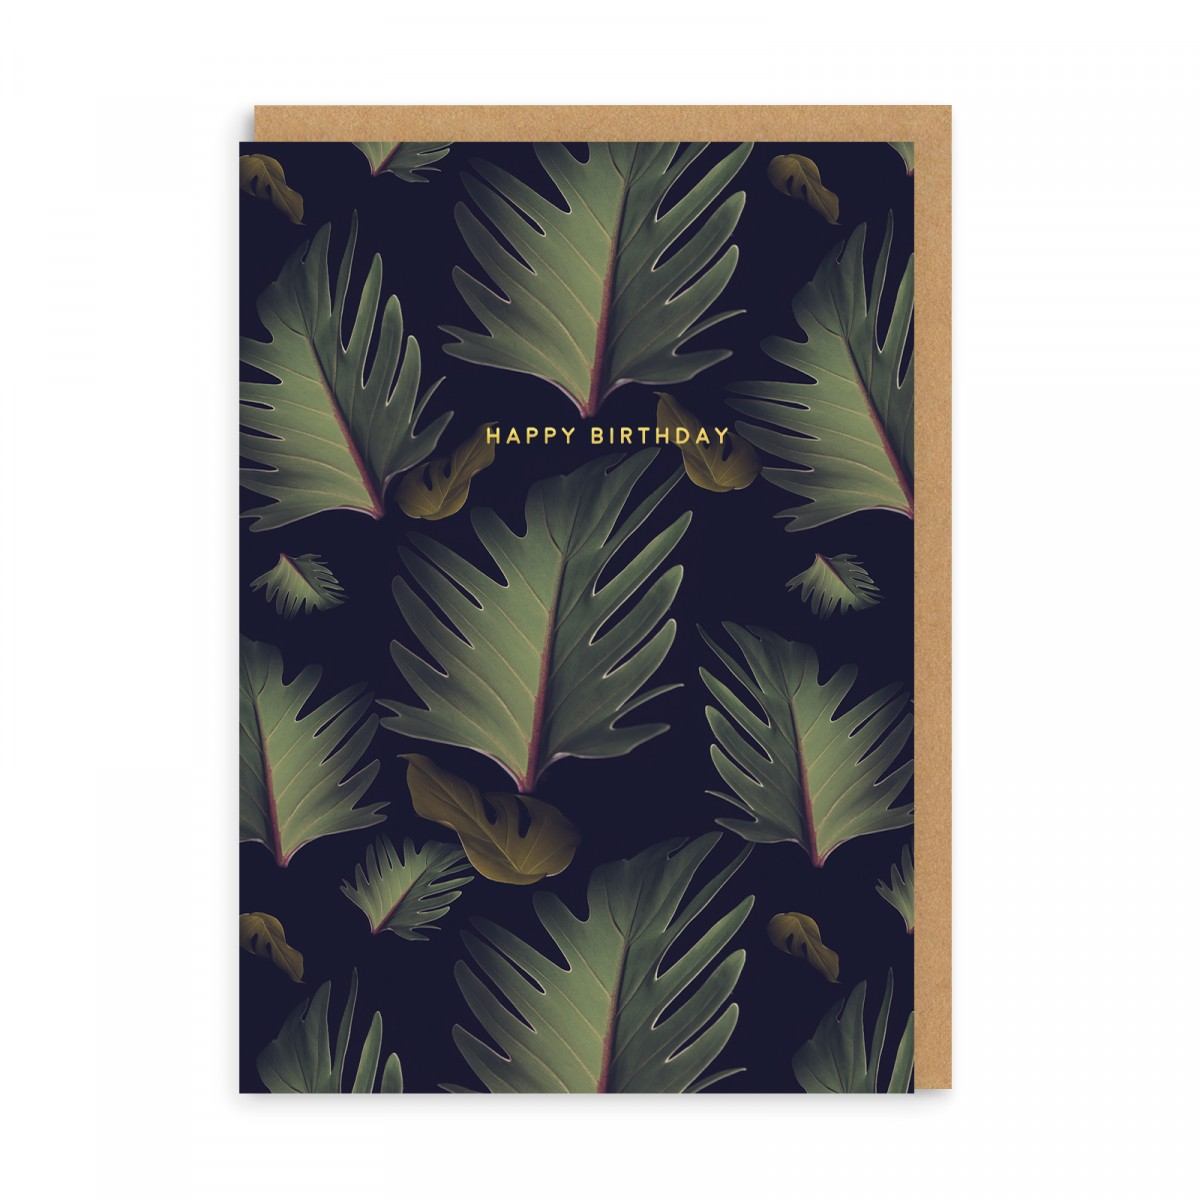 scl-gc-001-a6-dark-palm-greeting-card.jpg